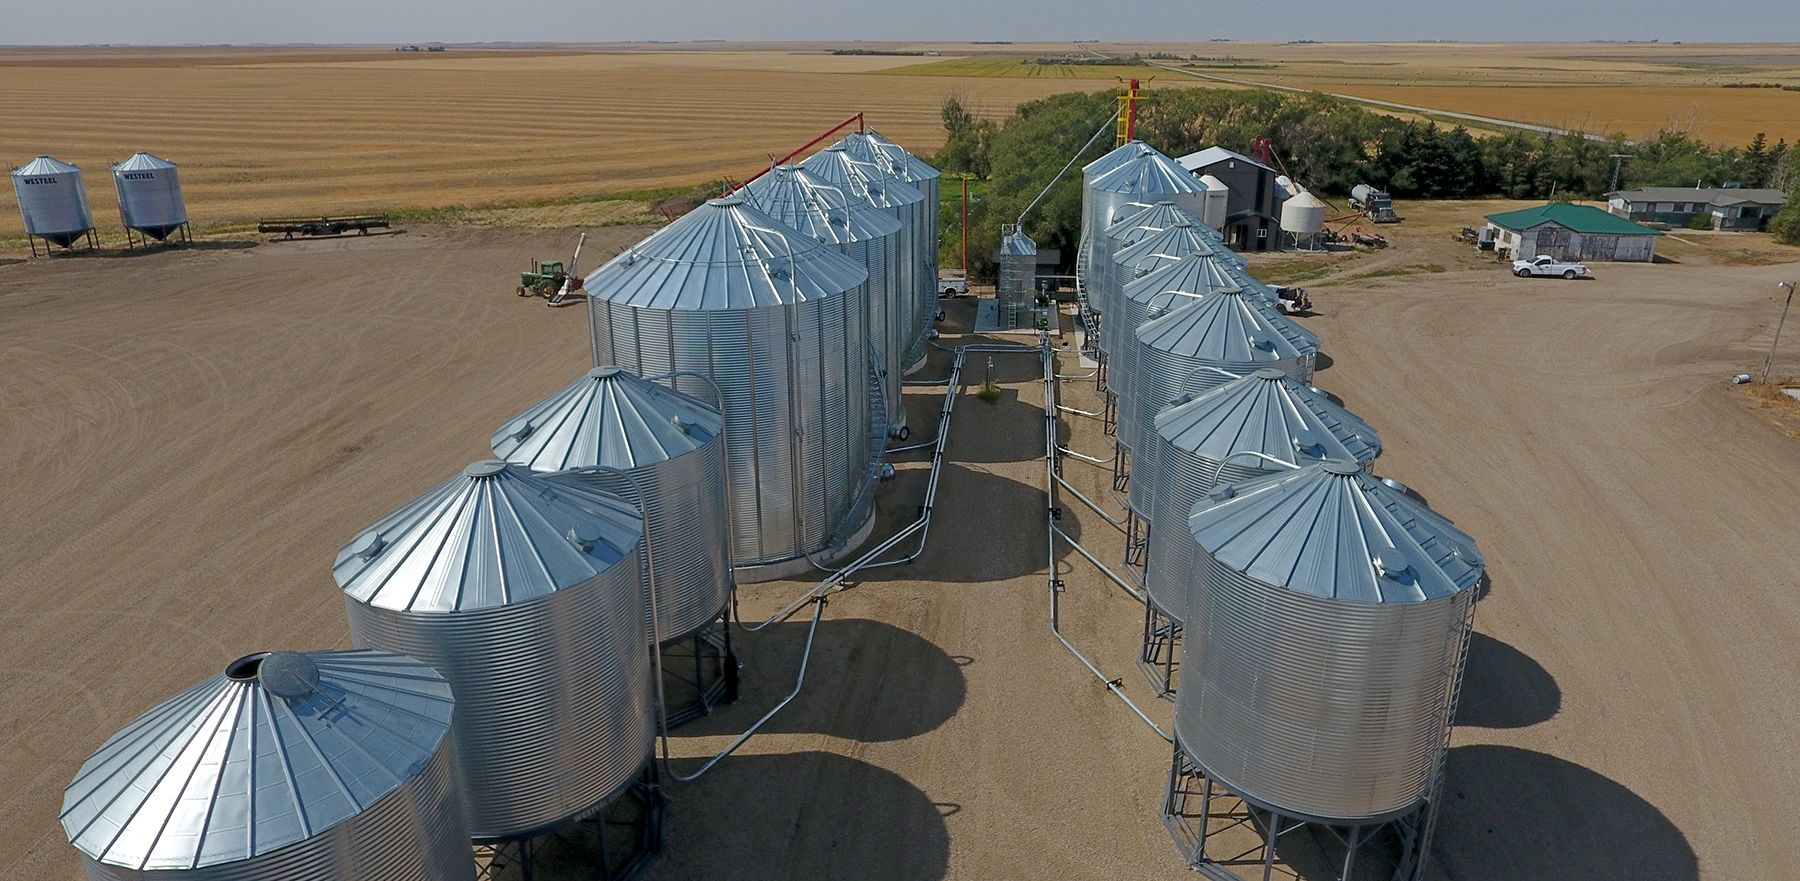 Drone footage of a grain drying & grain handling setup